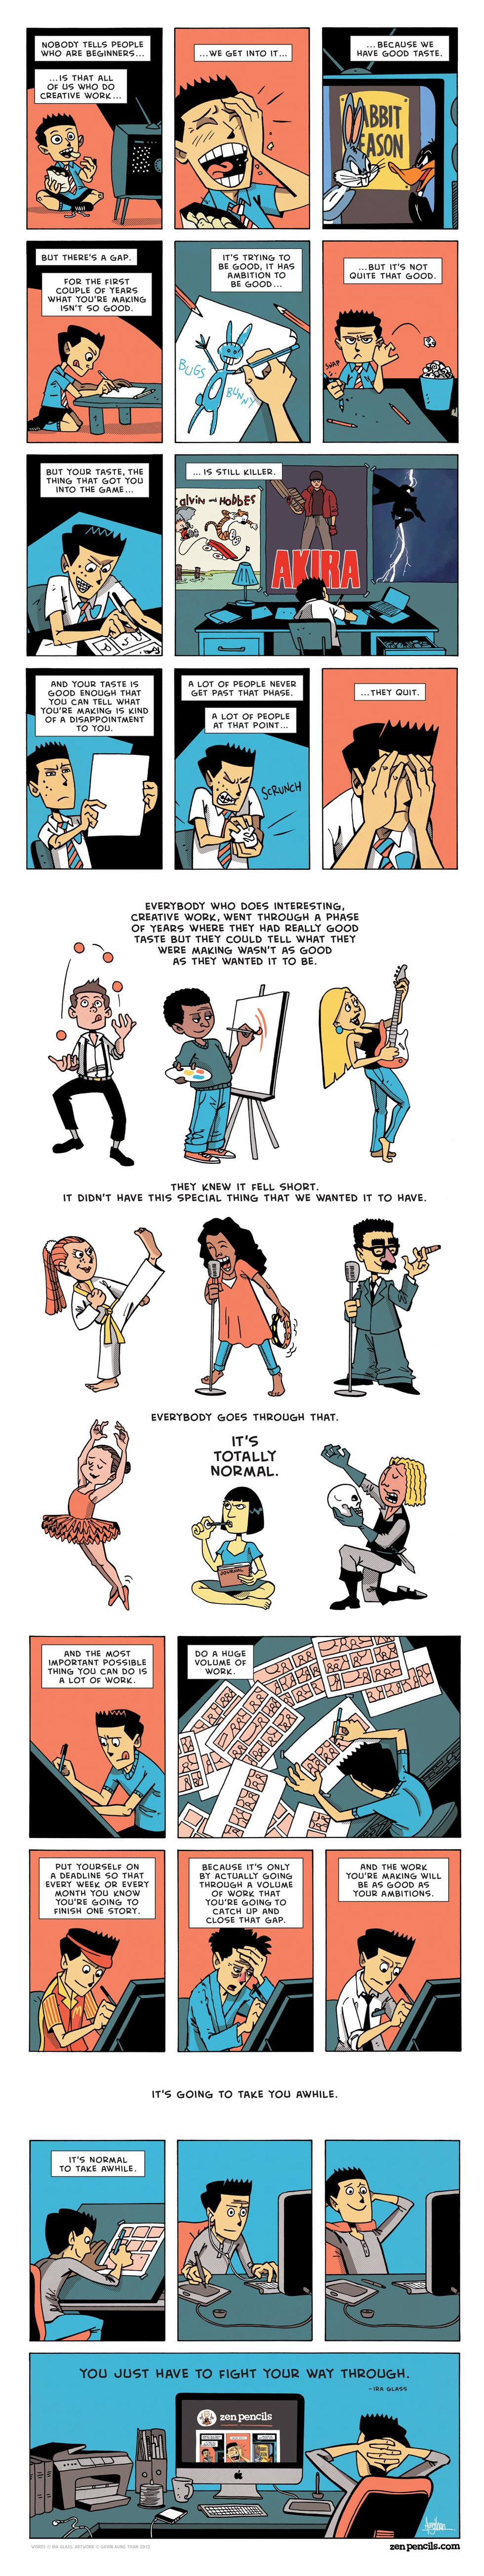 Source: http://zenpencils.com/comic/90-ira-glass-advice-for-beginners/